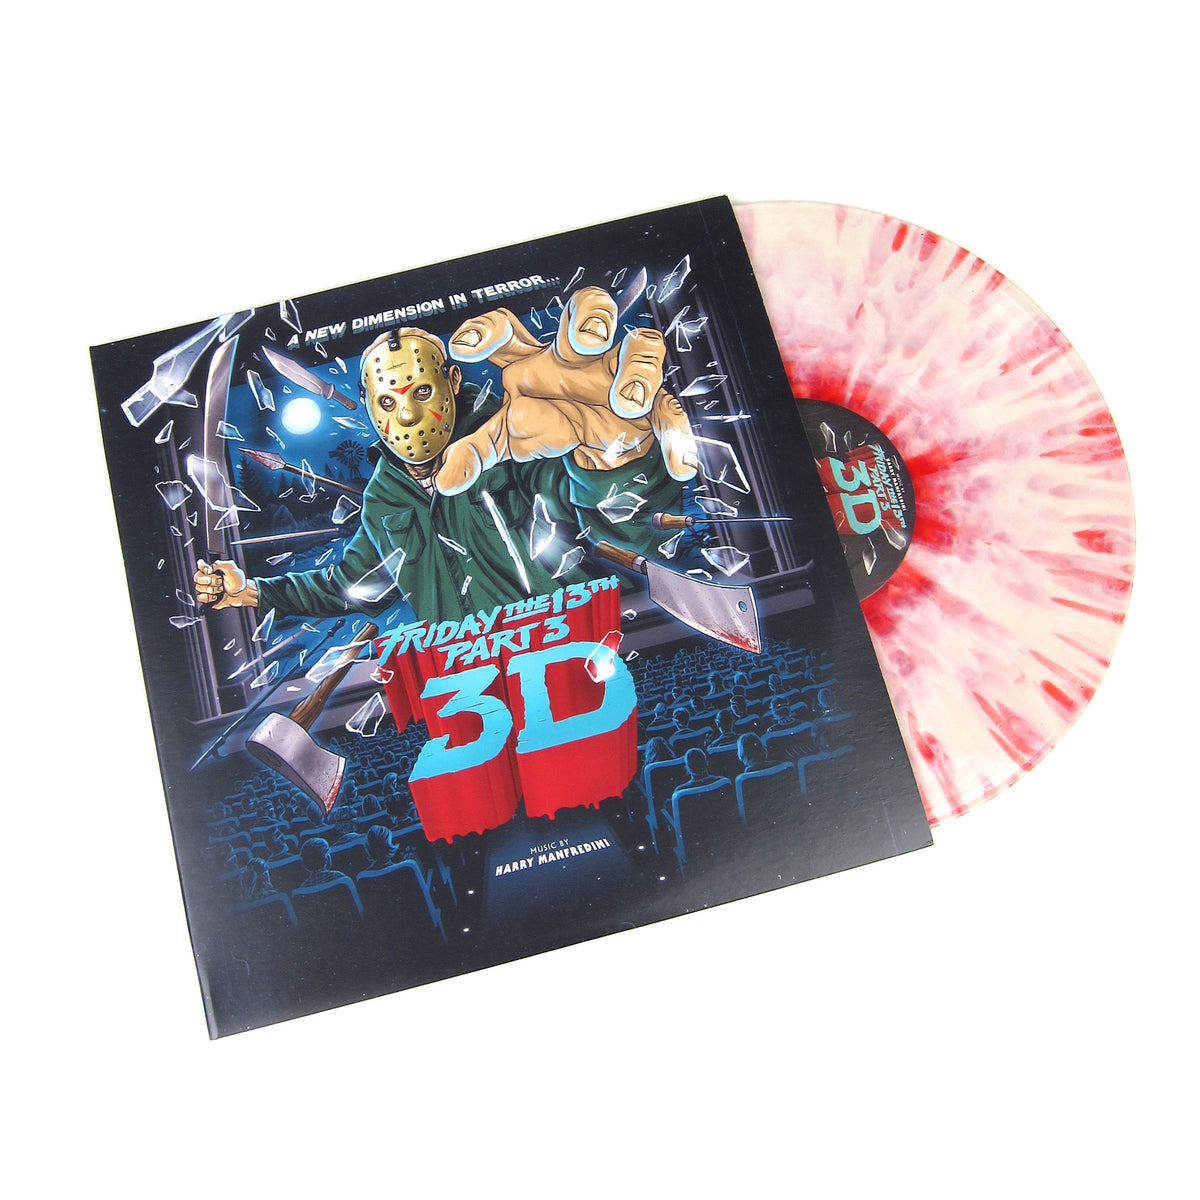 Harry Manfredini: Friday The 13th Part 3 (180g Colored Vinyl) Vinyl 2LP